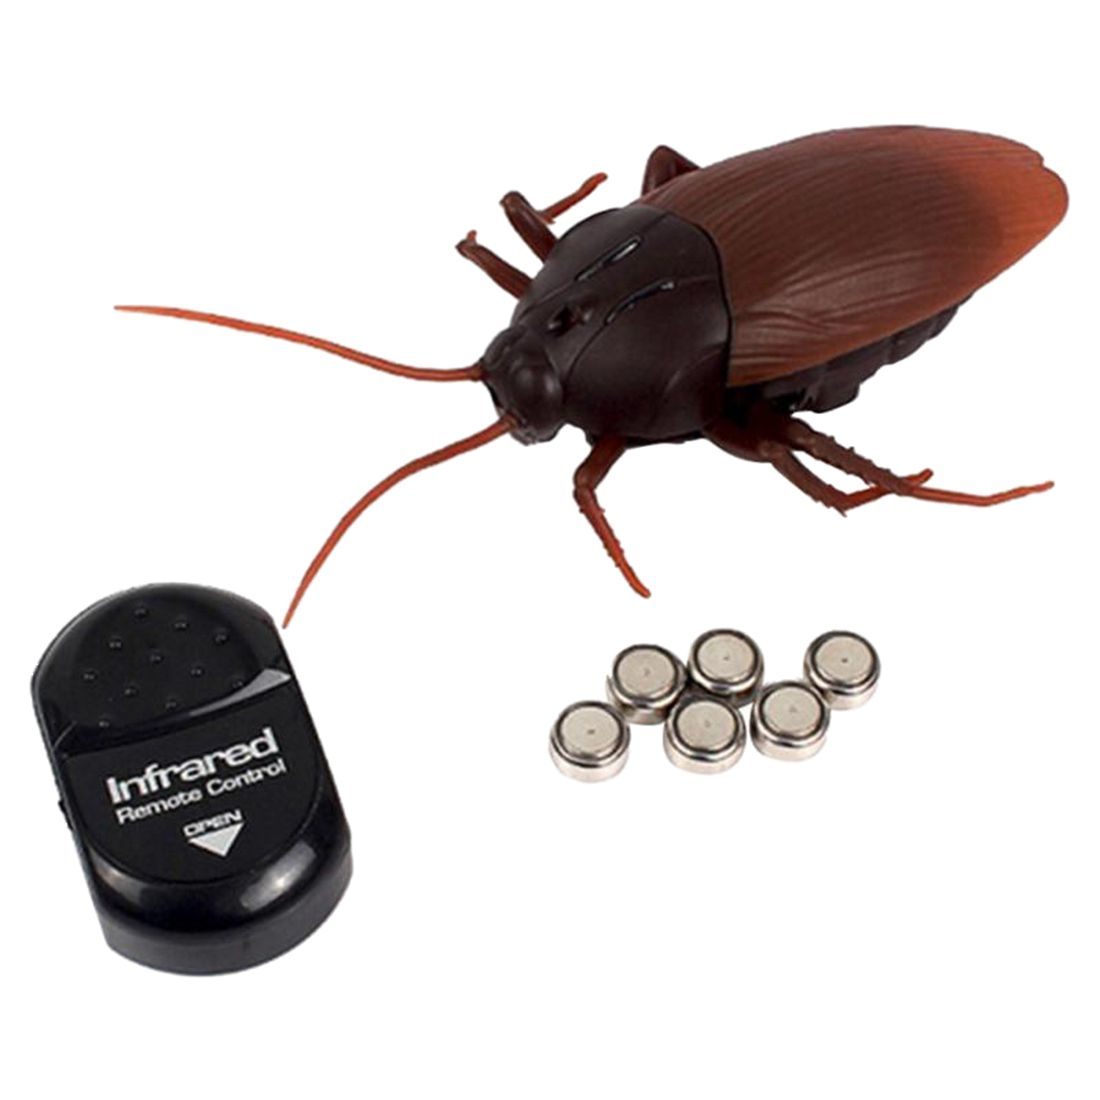 Horrible Pets Infrared RC Roach Cockroach Remote Control Fake Toy Insects Prank Joke Scary Trick Bugs For Halloween